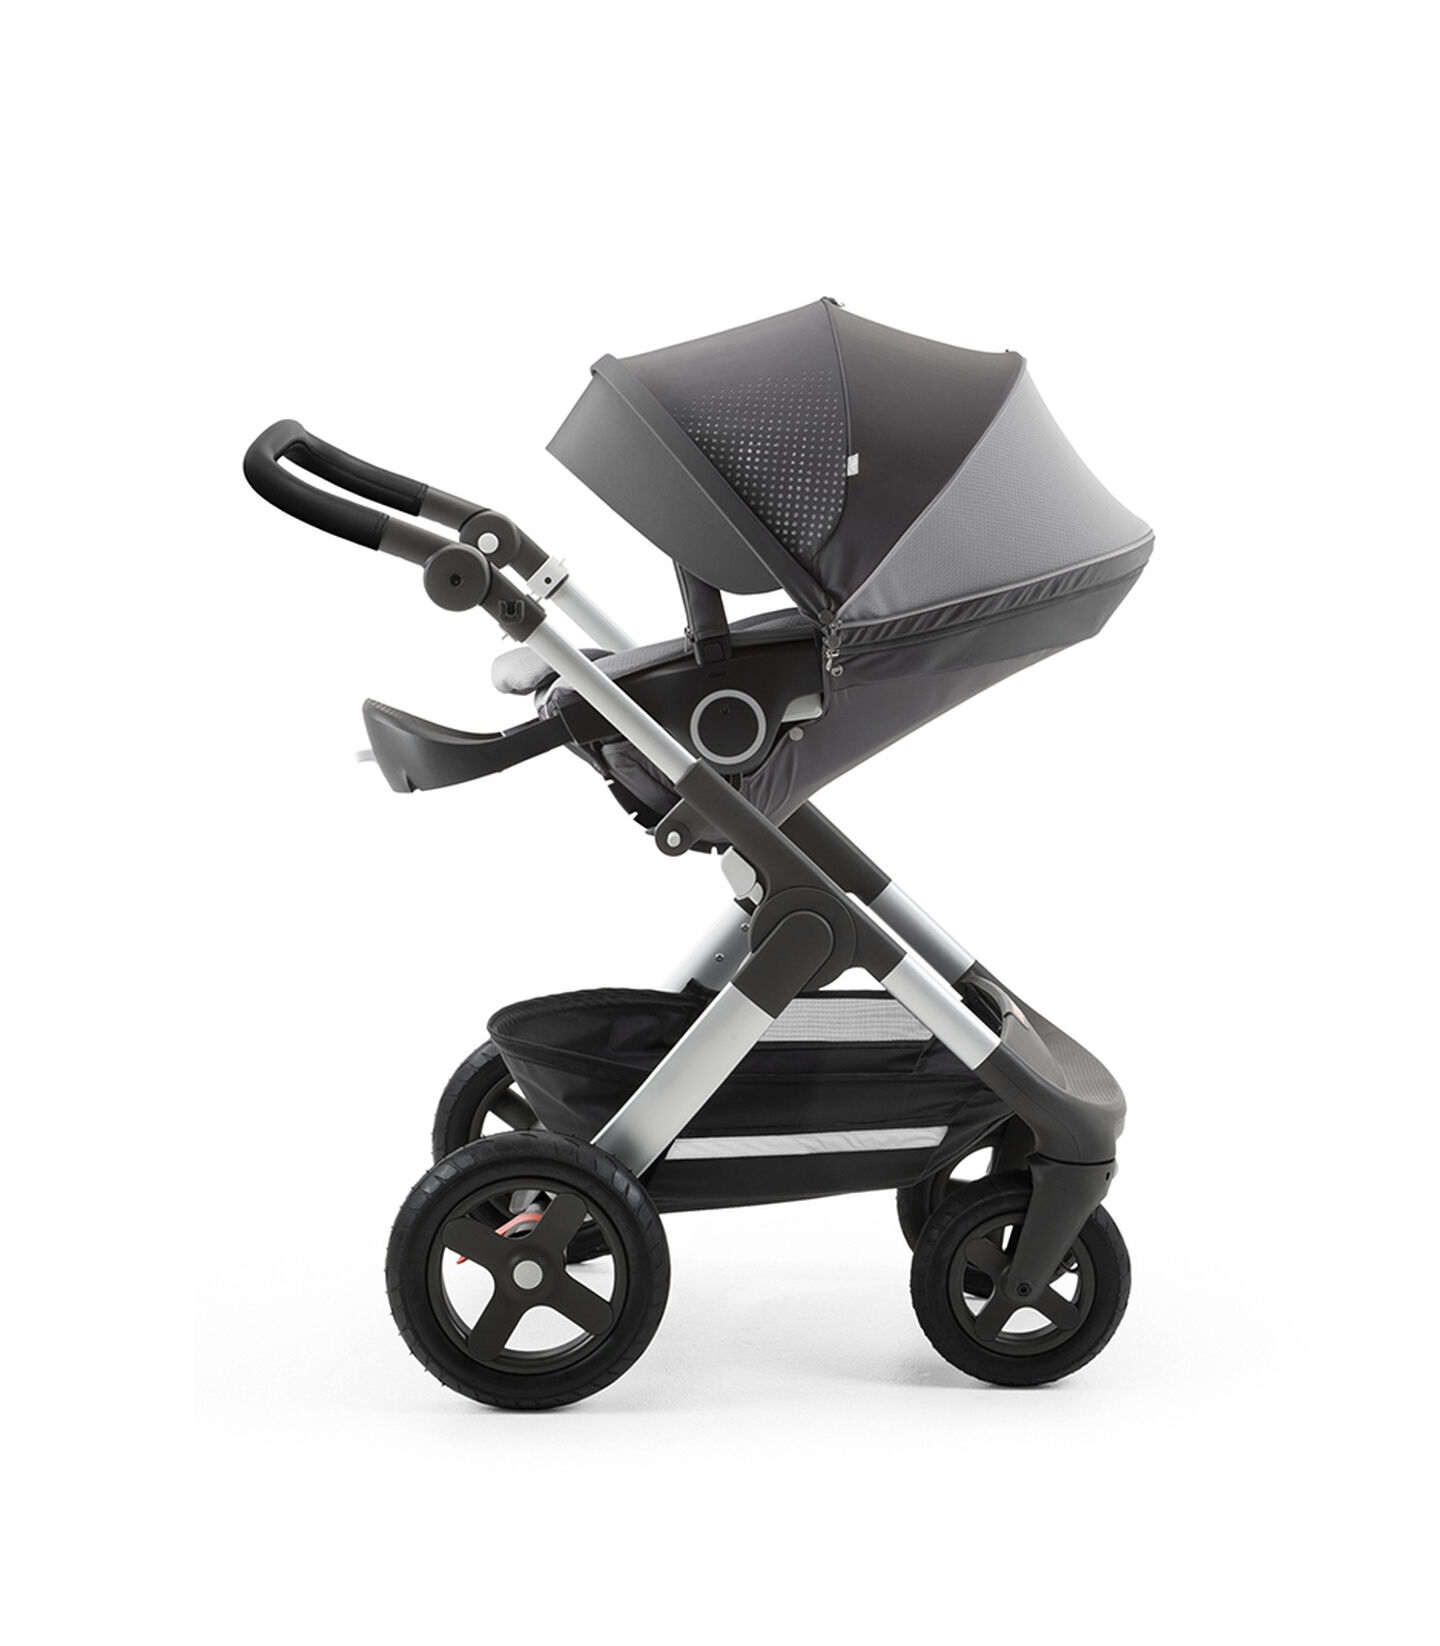 Stokke® Trailz™ with Silver Chassis and Stokke® Stroller Seat Athlesure Grey. Terrain Wheels.